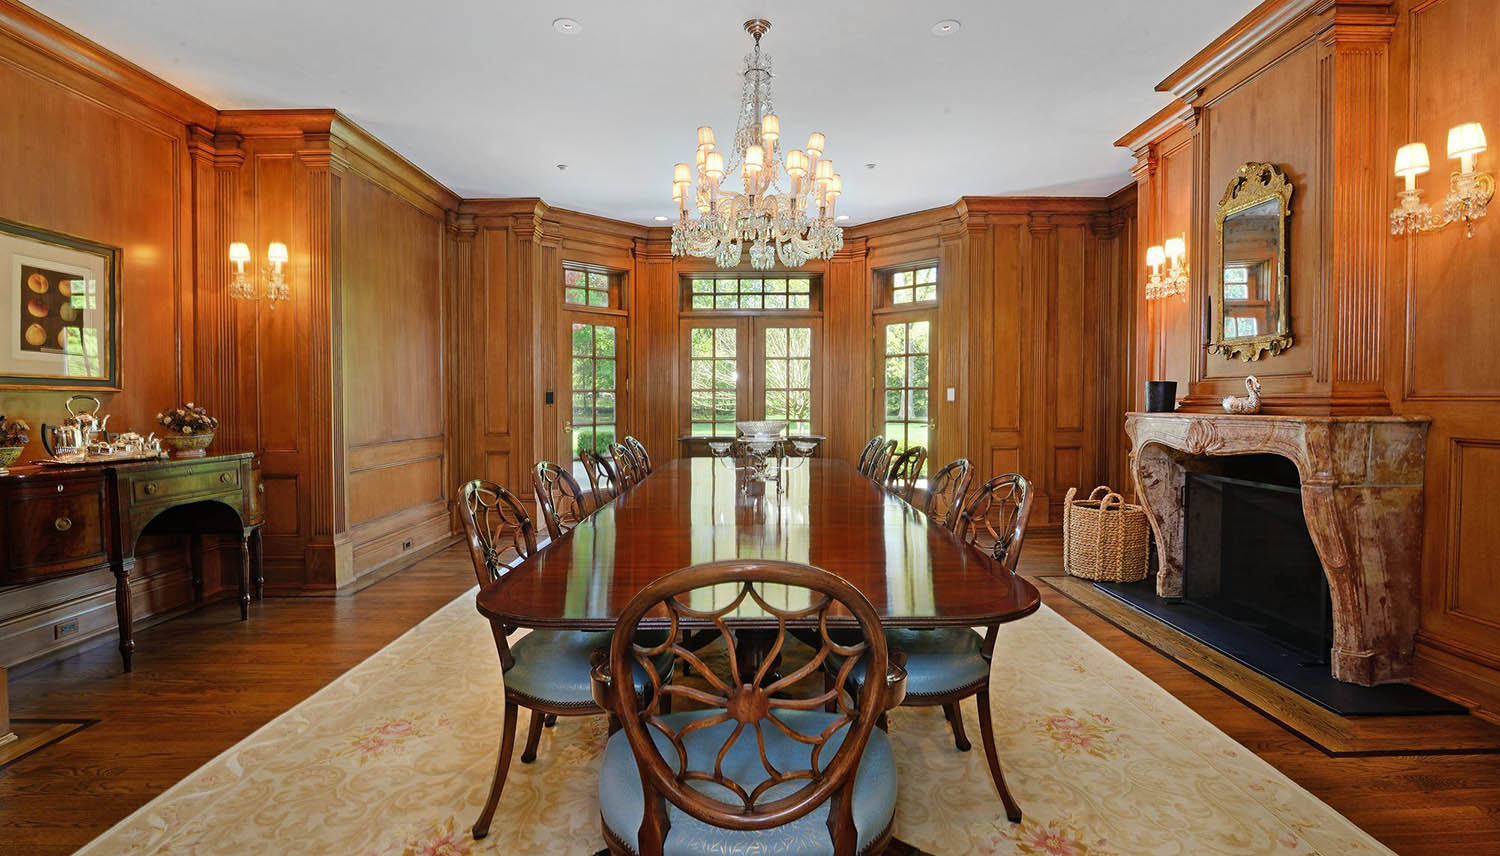 Dining room. All wood walls with custom trim and crown molding. Large dining table.